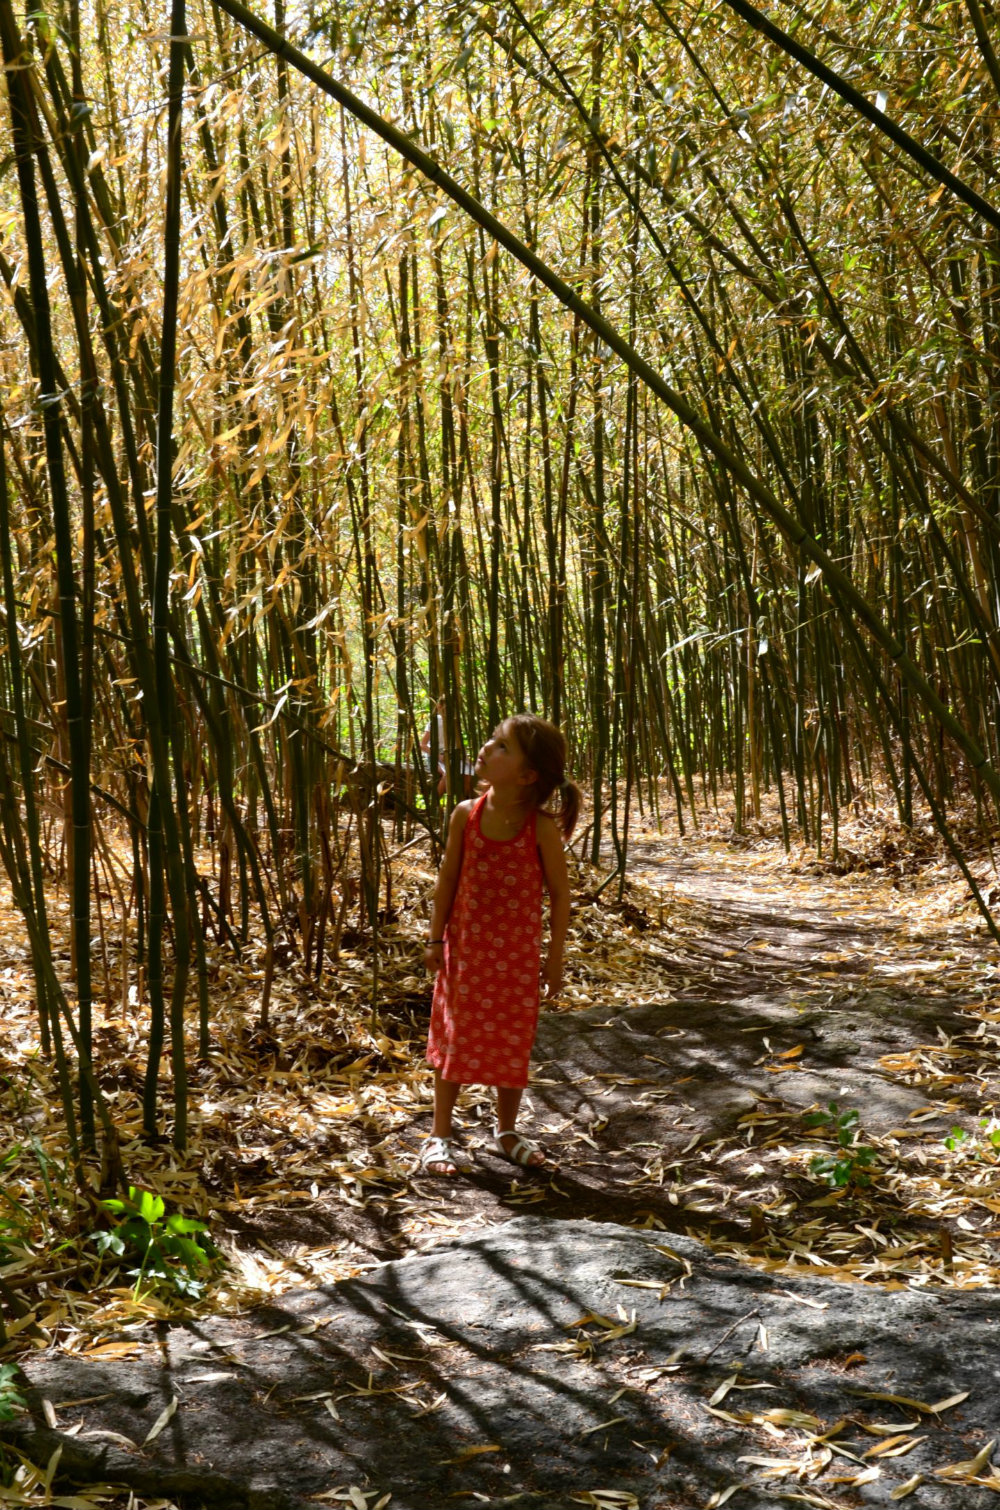 Walking through a bamboo forest in Cold Spring, NY.